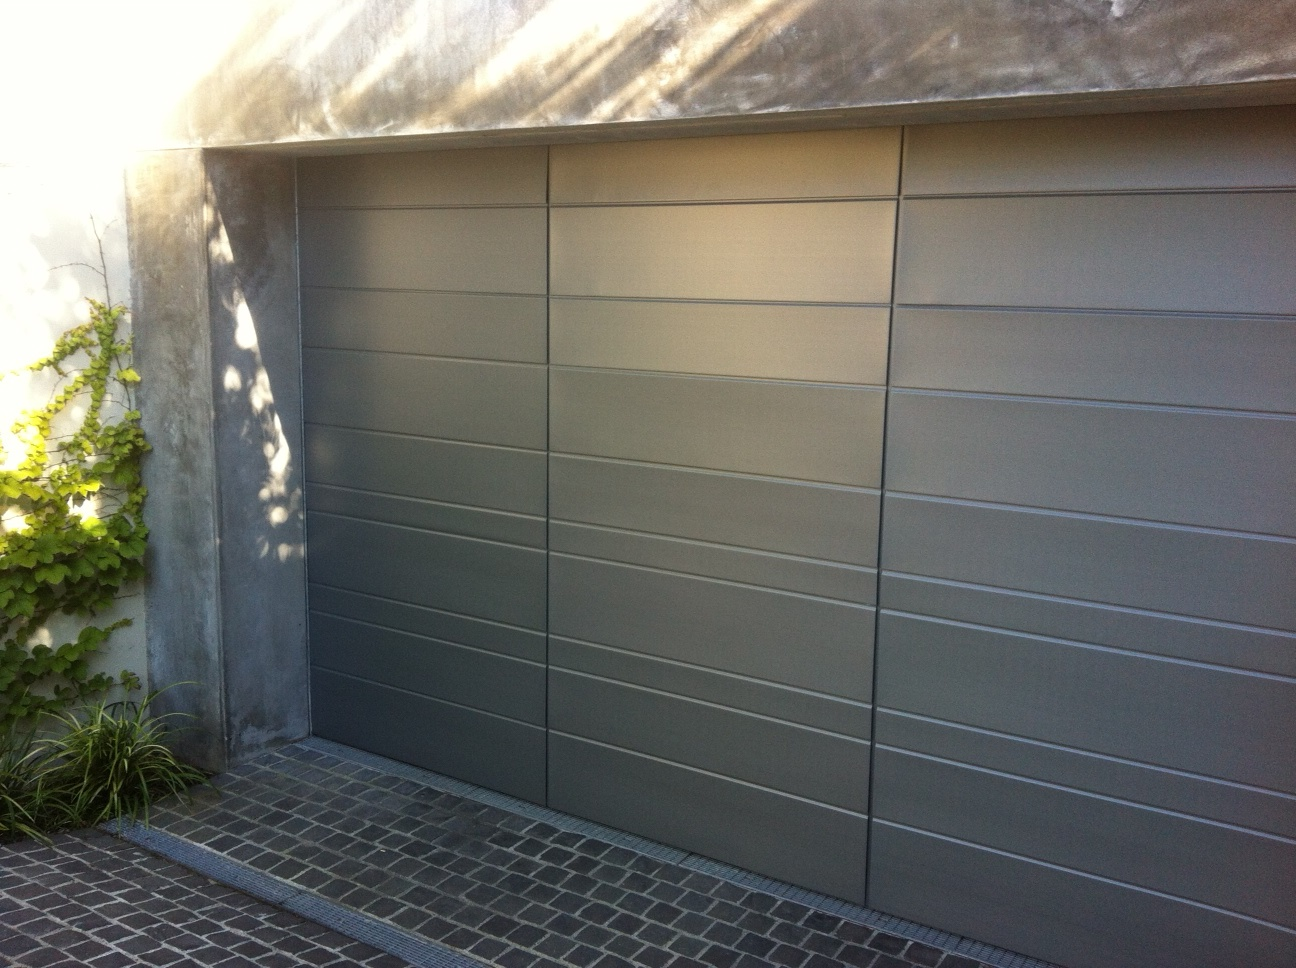 968 #938238 Custom Garage Doors Precious Metals Range Danmar Garage Doors wallpaper Custom Garage Doors 38351296